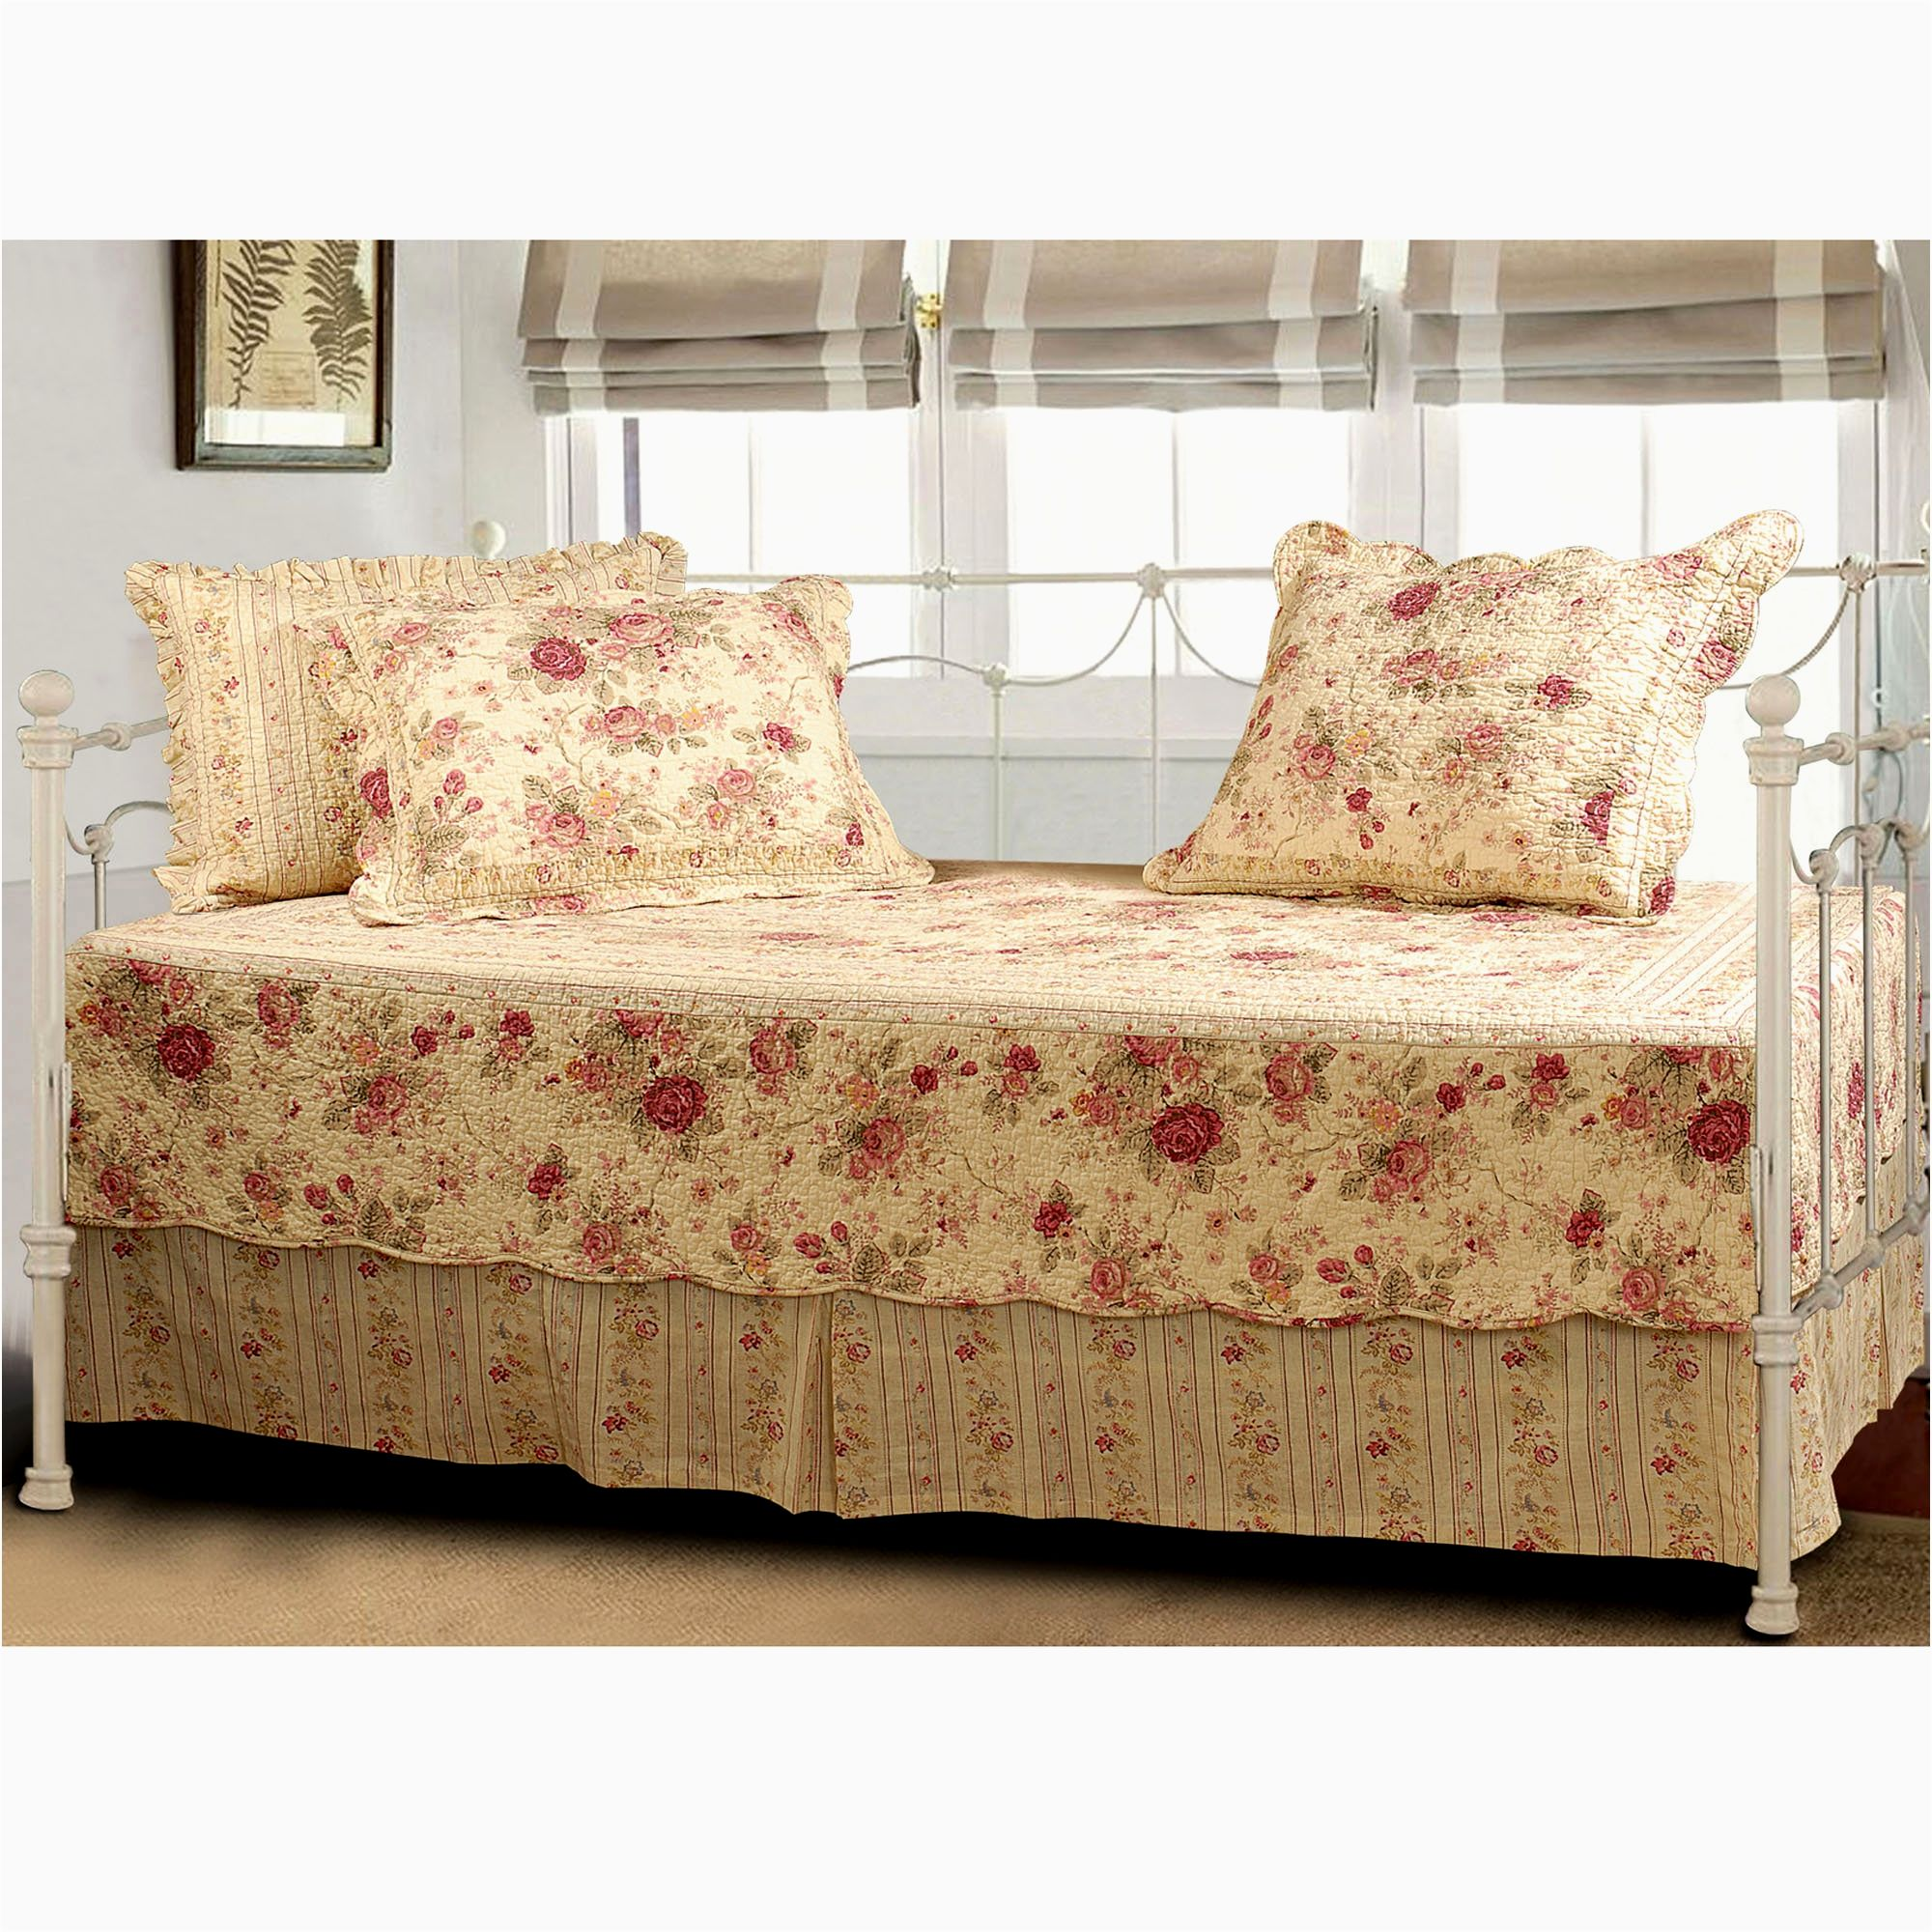 top ikea sofa bed with chaise inspiration-Sensational Ikea sofa Bed with Chaise Image